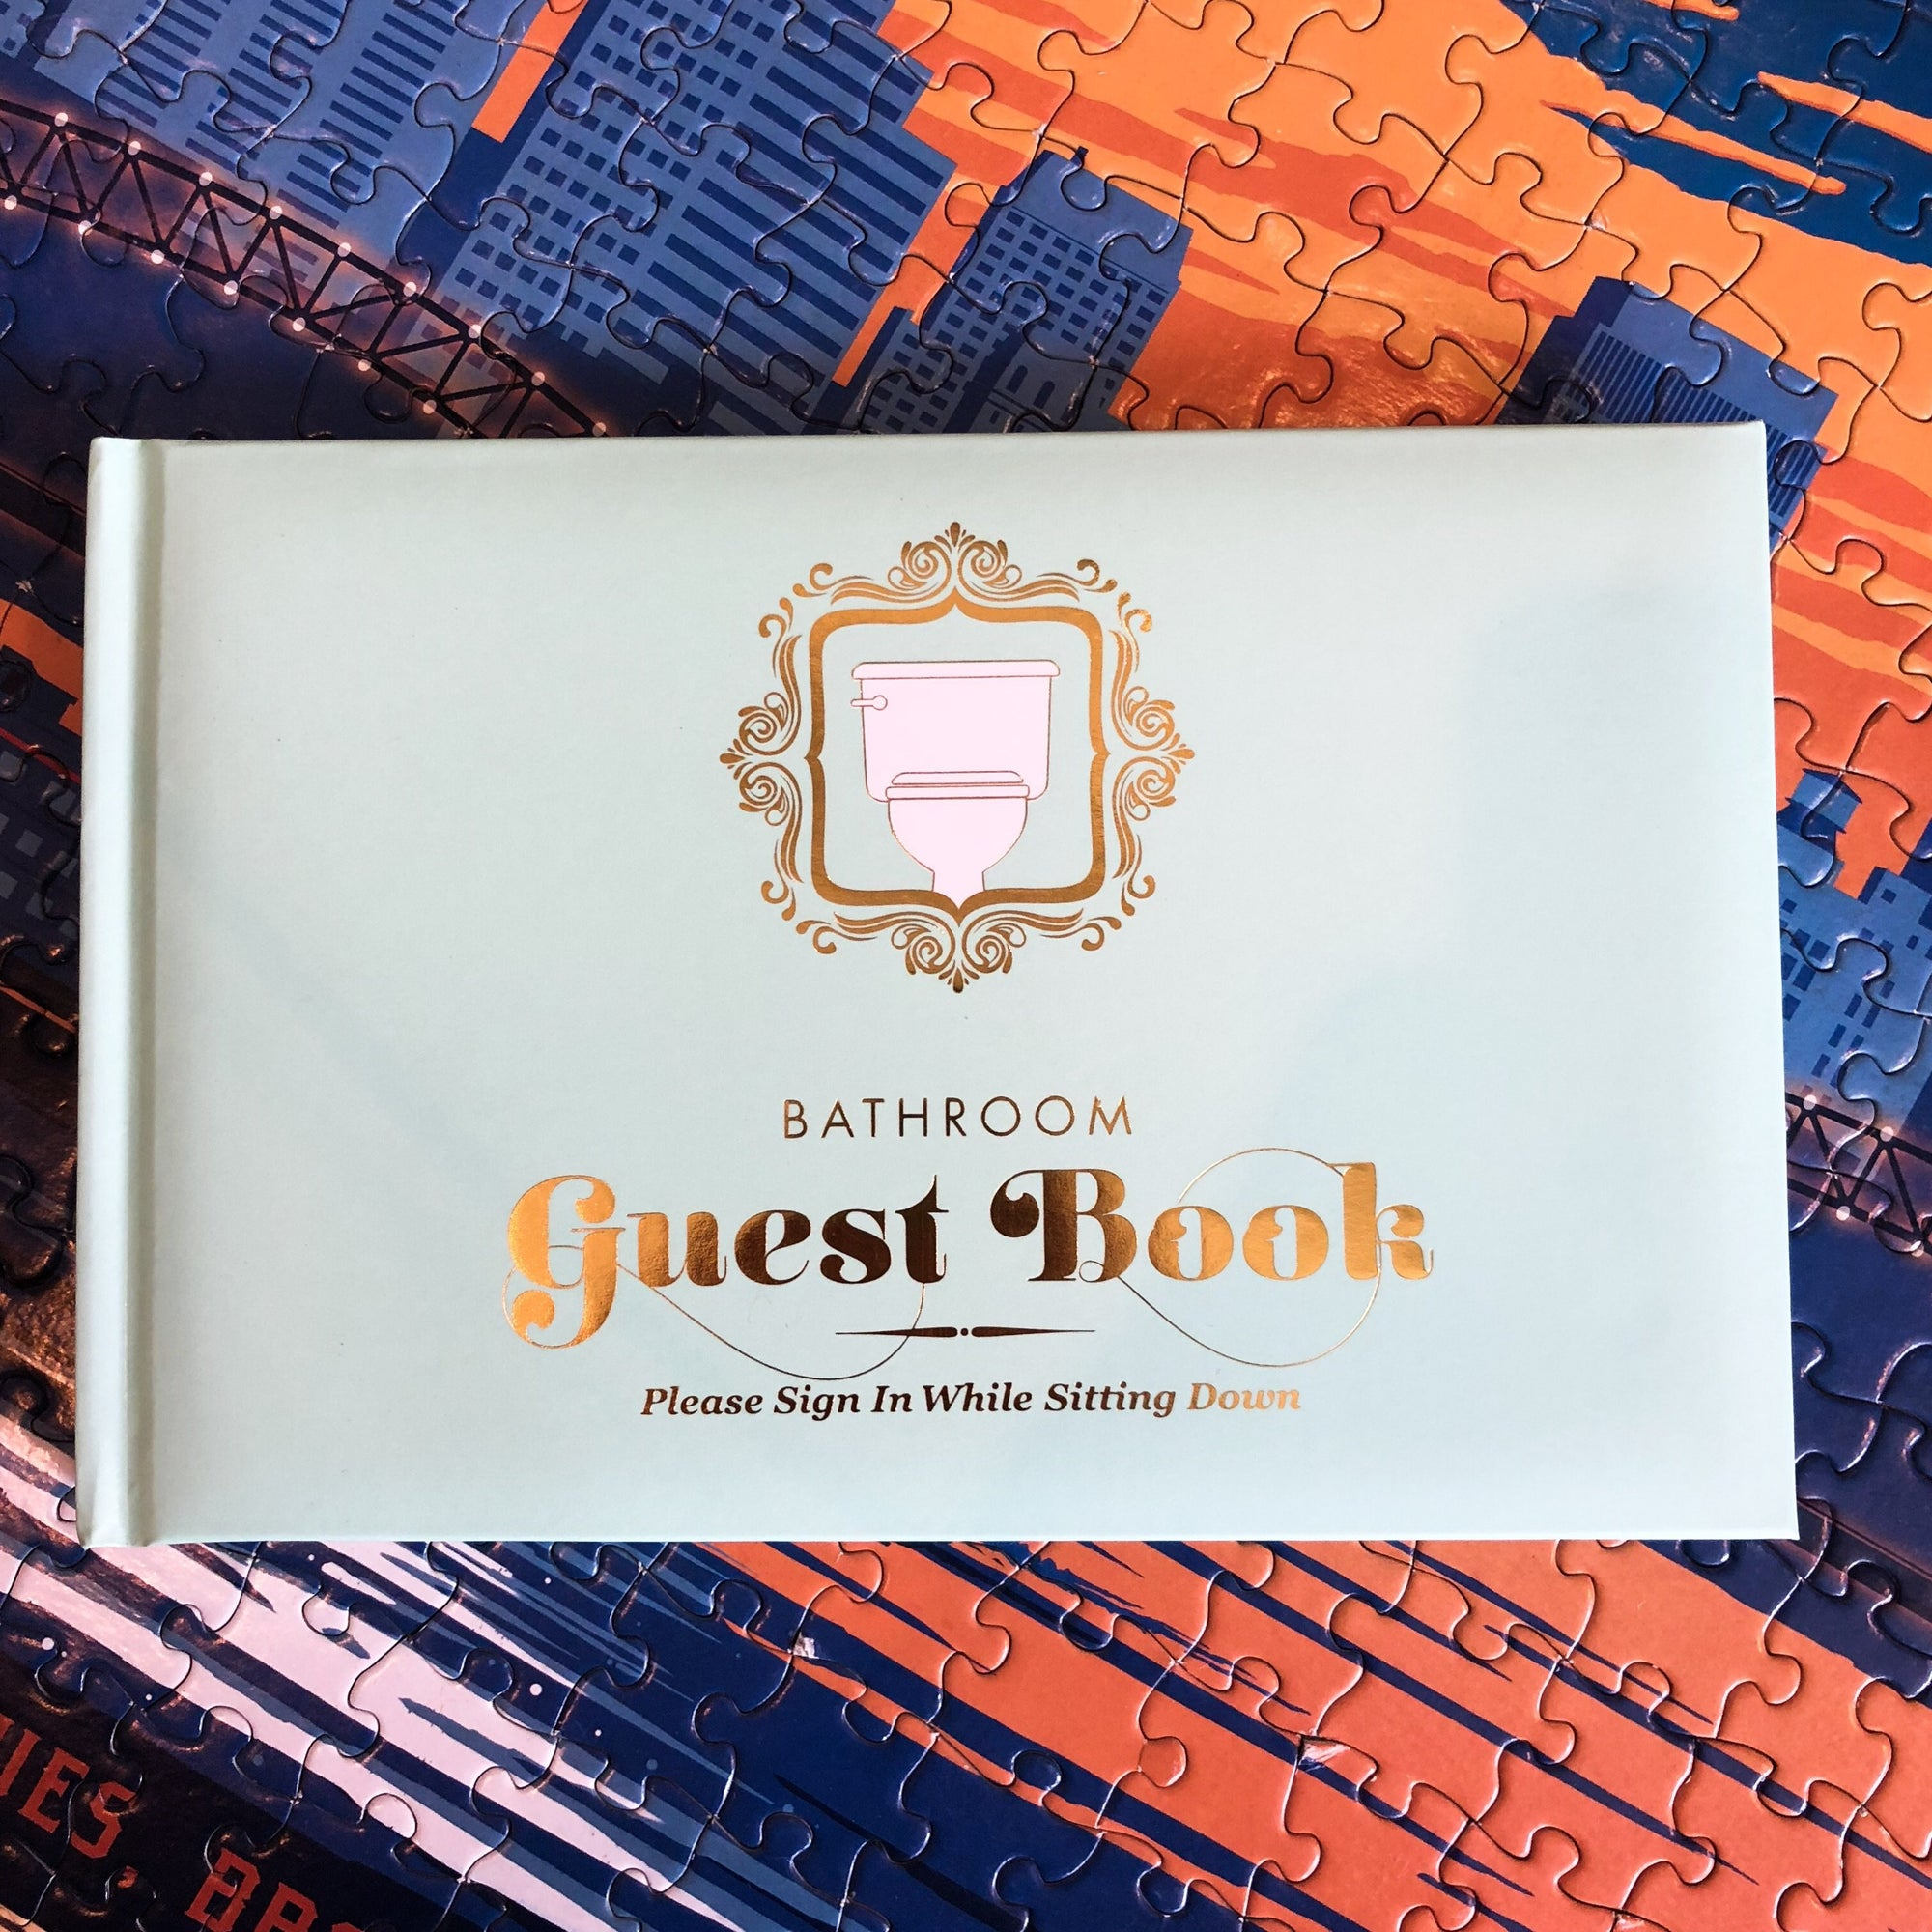 Buy Bathroom Guest Book from Walking Pants Curiosities, the Most un-General Gift Store in Downtown Memphis, Tennessee!